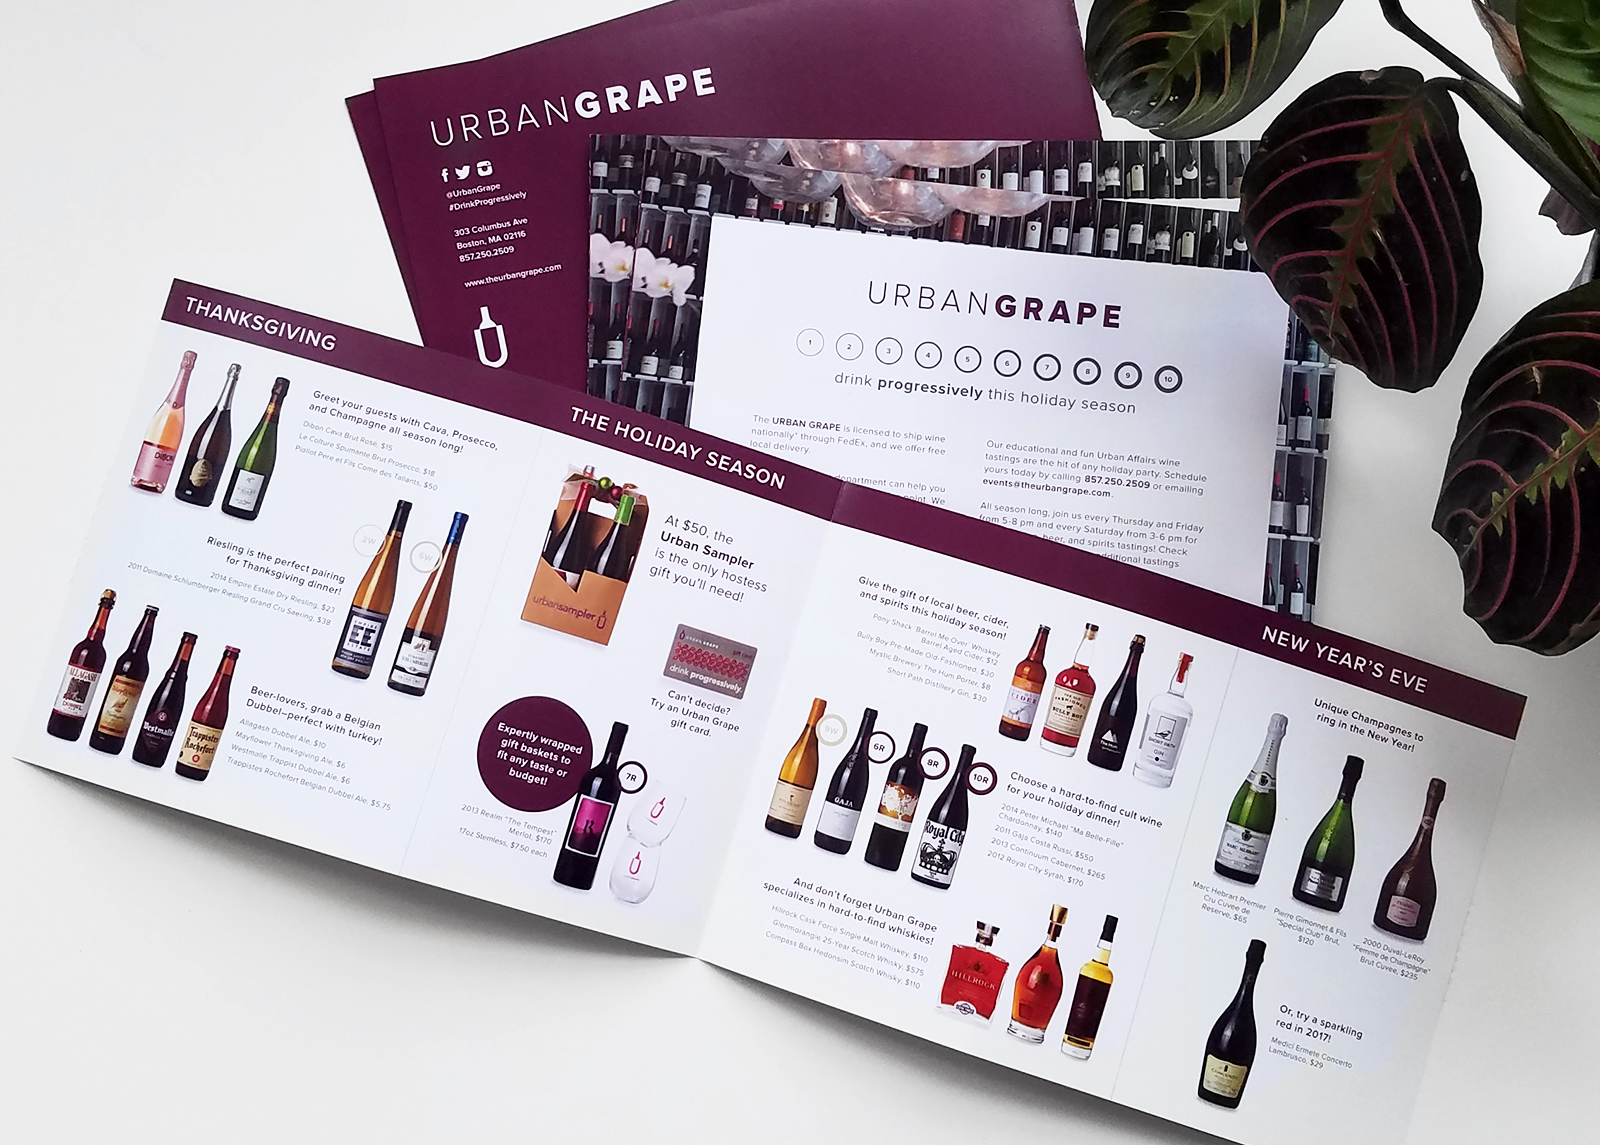 Urban Grape Branding by JSGD